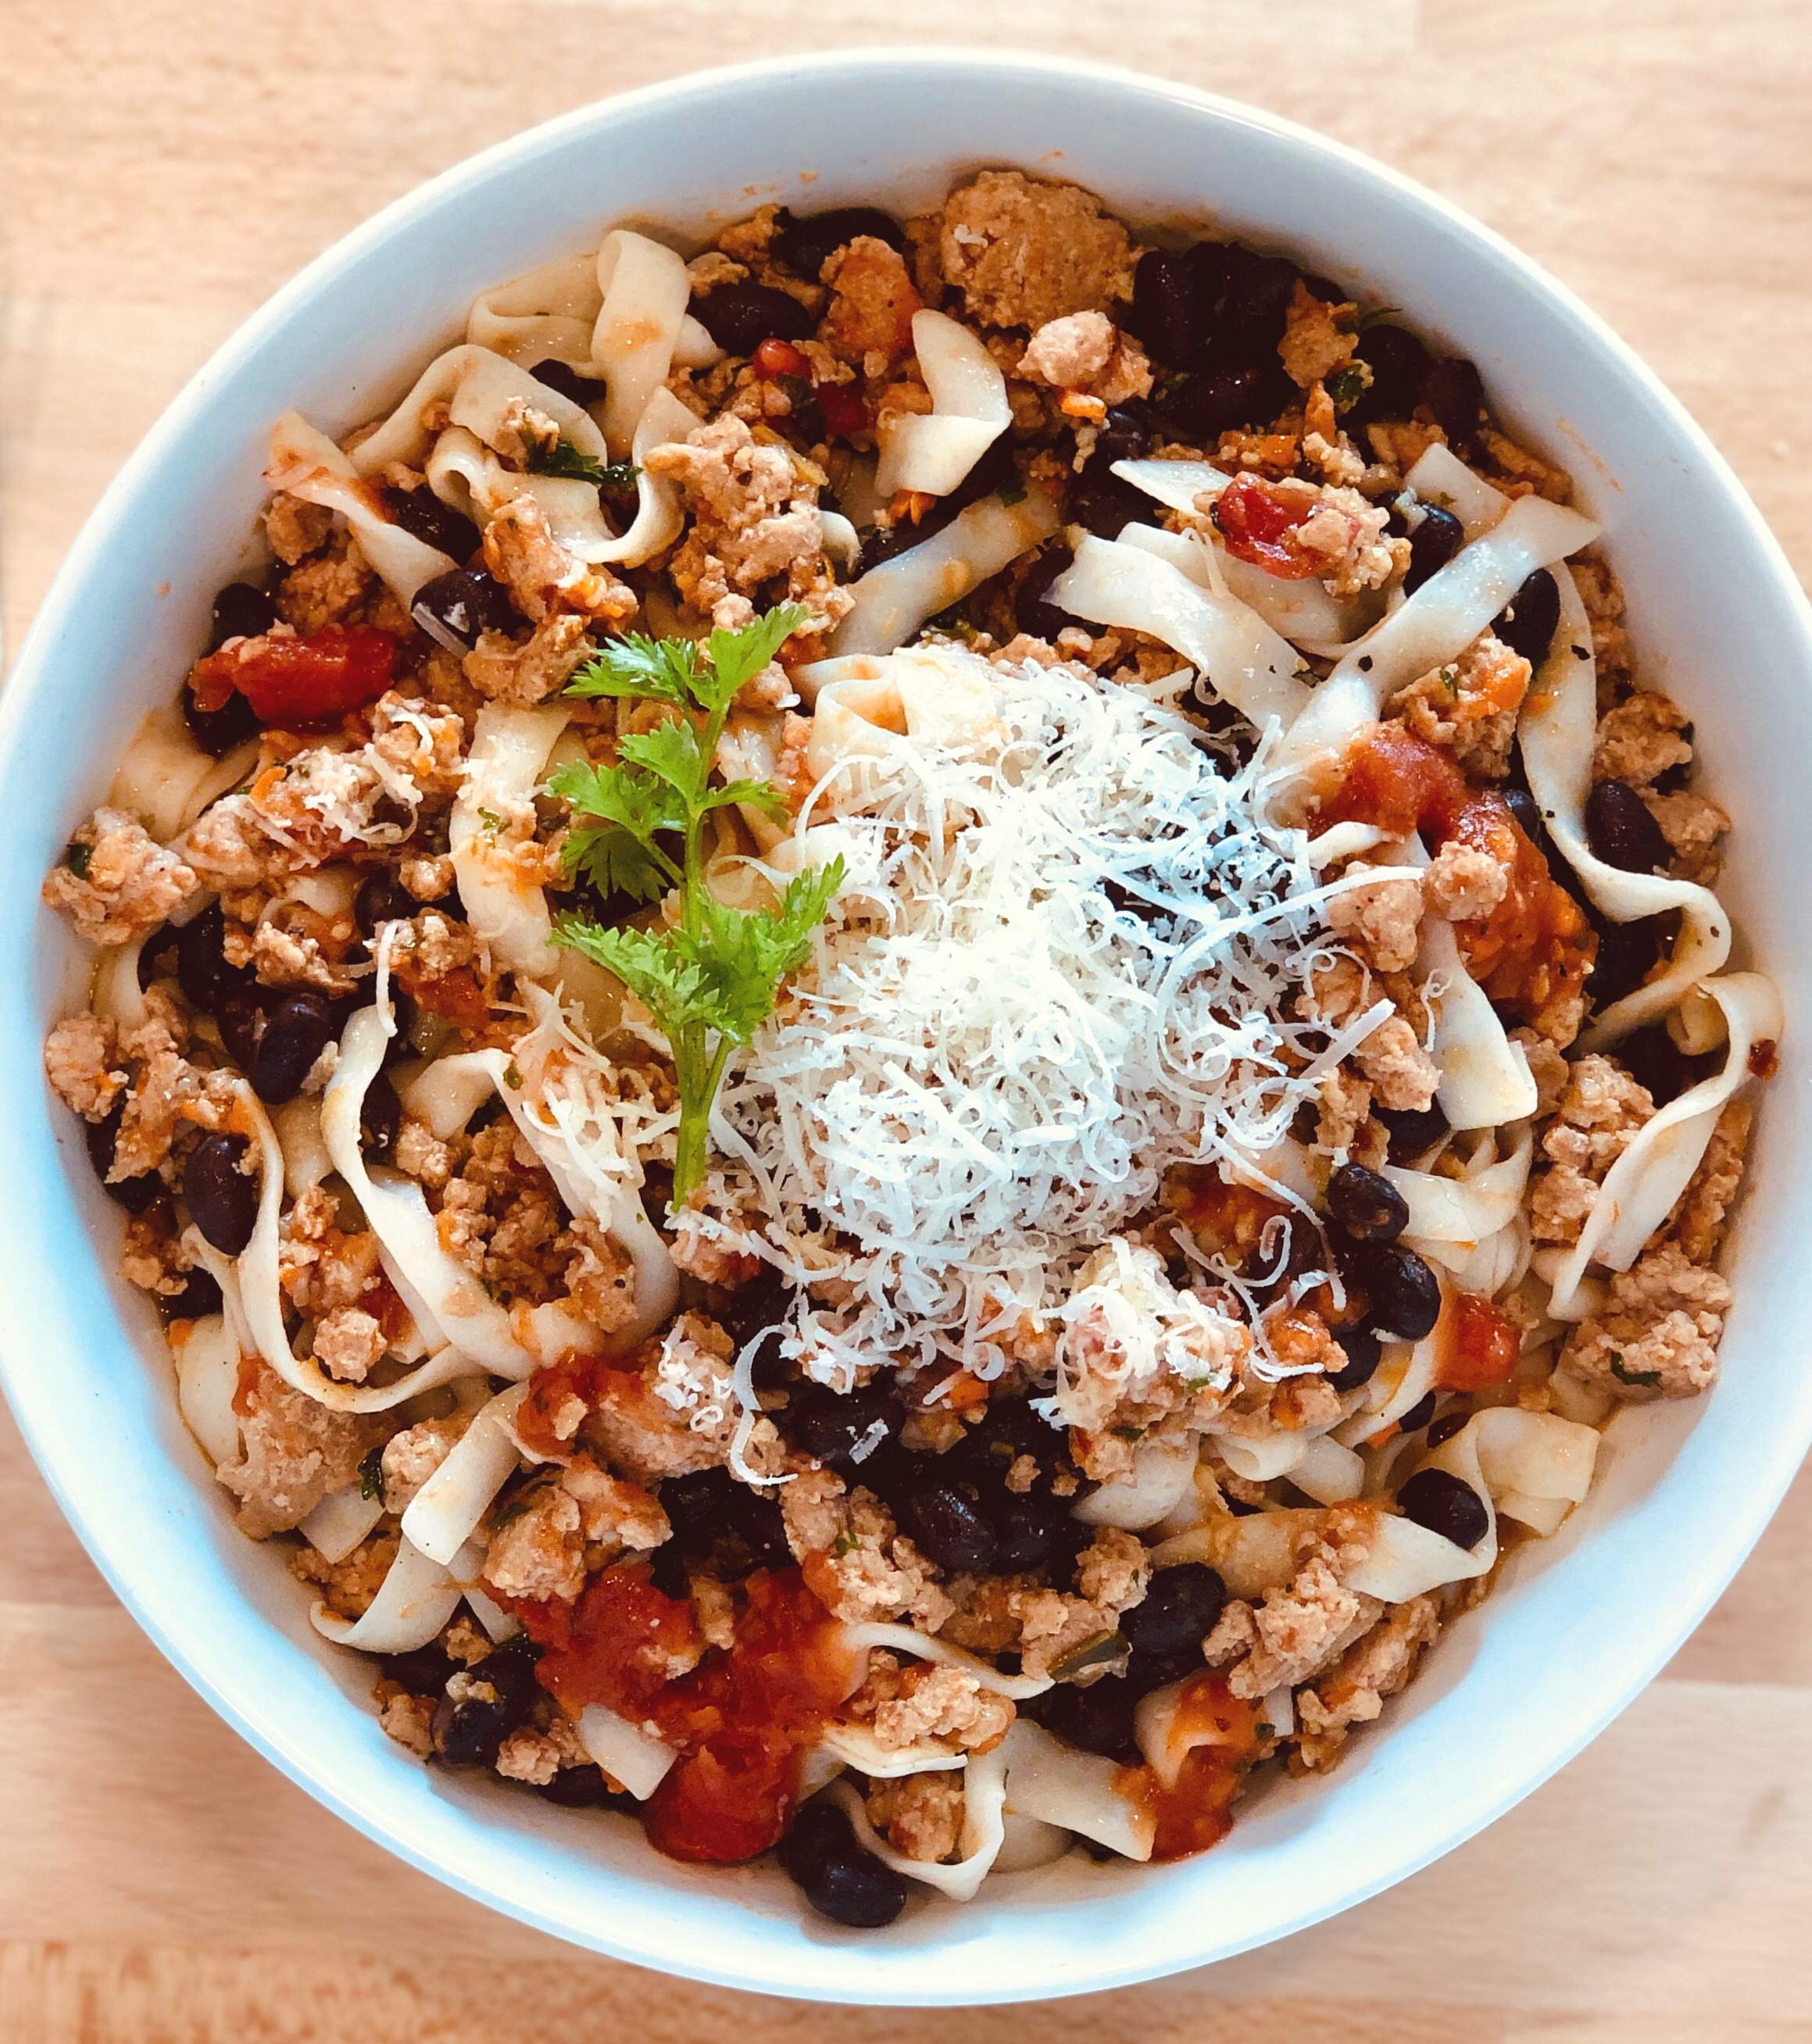 Low Carb Noodles with Chicken and Black Beans